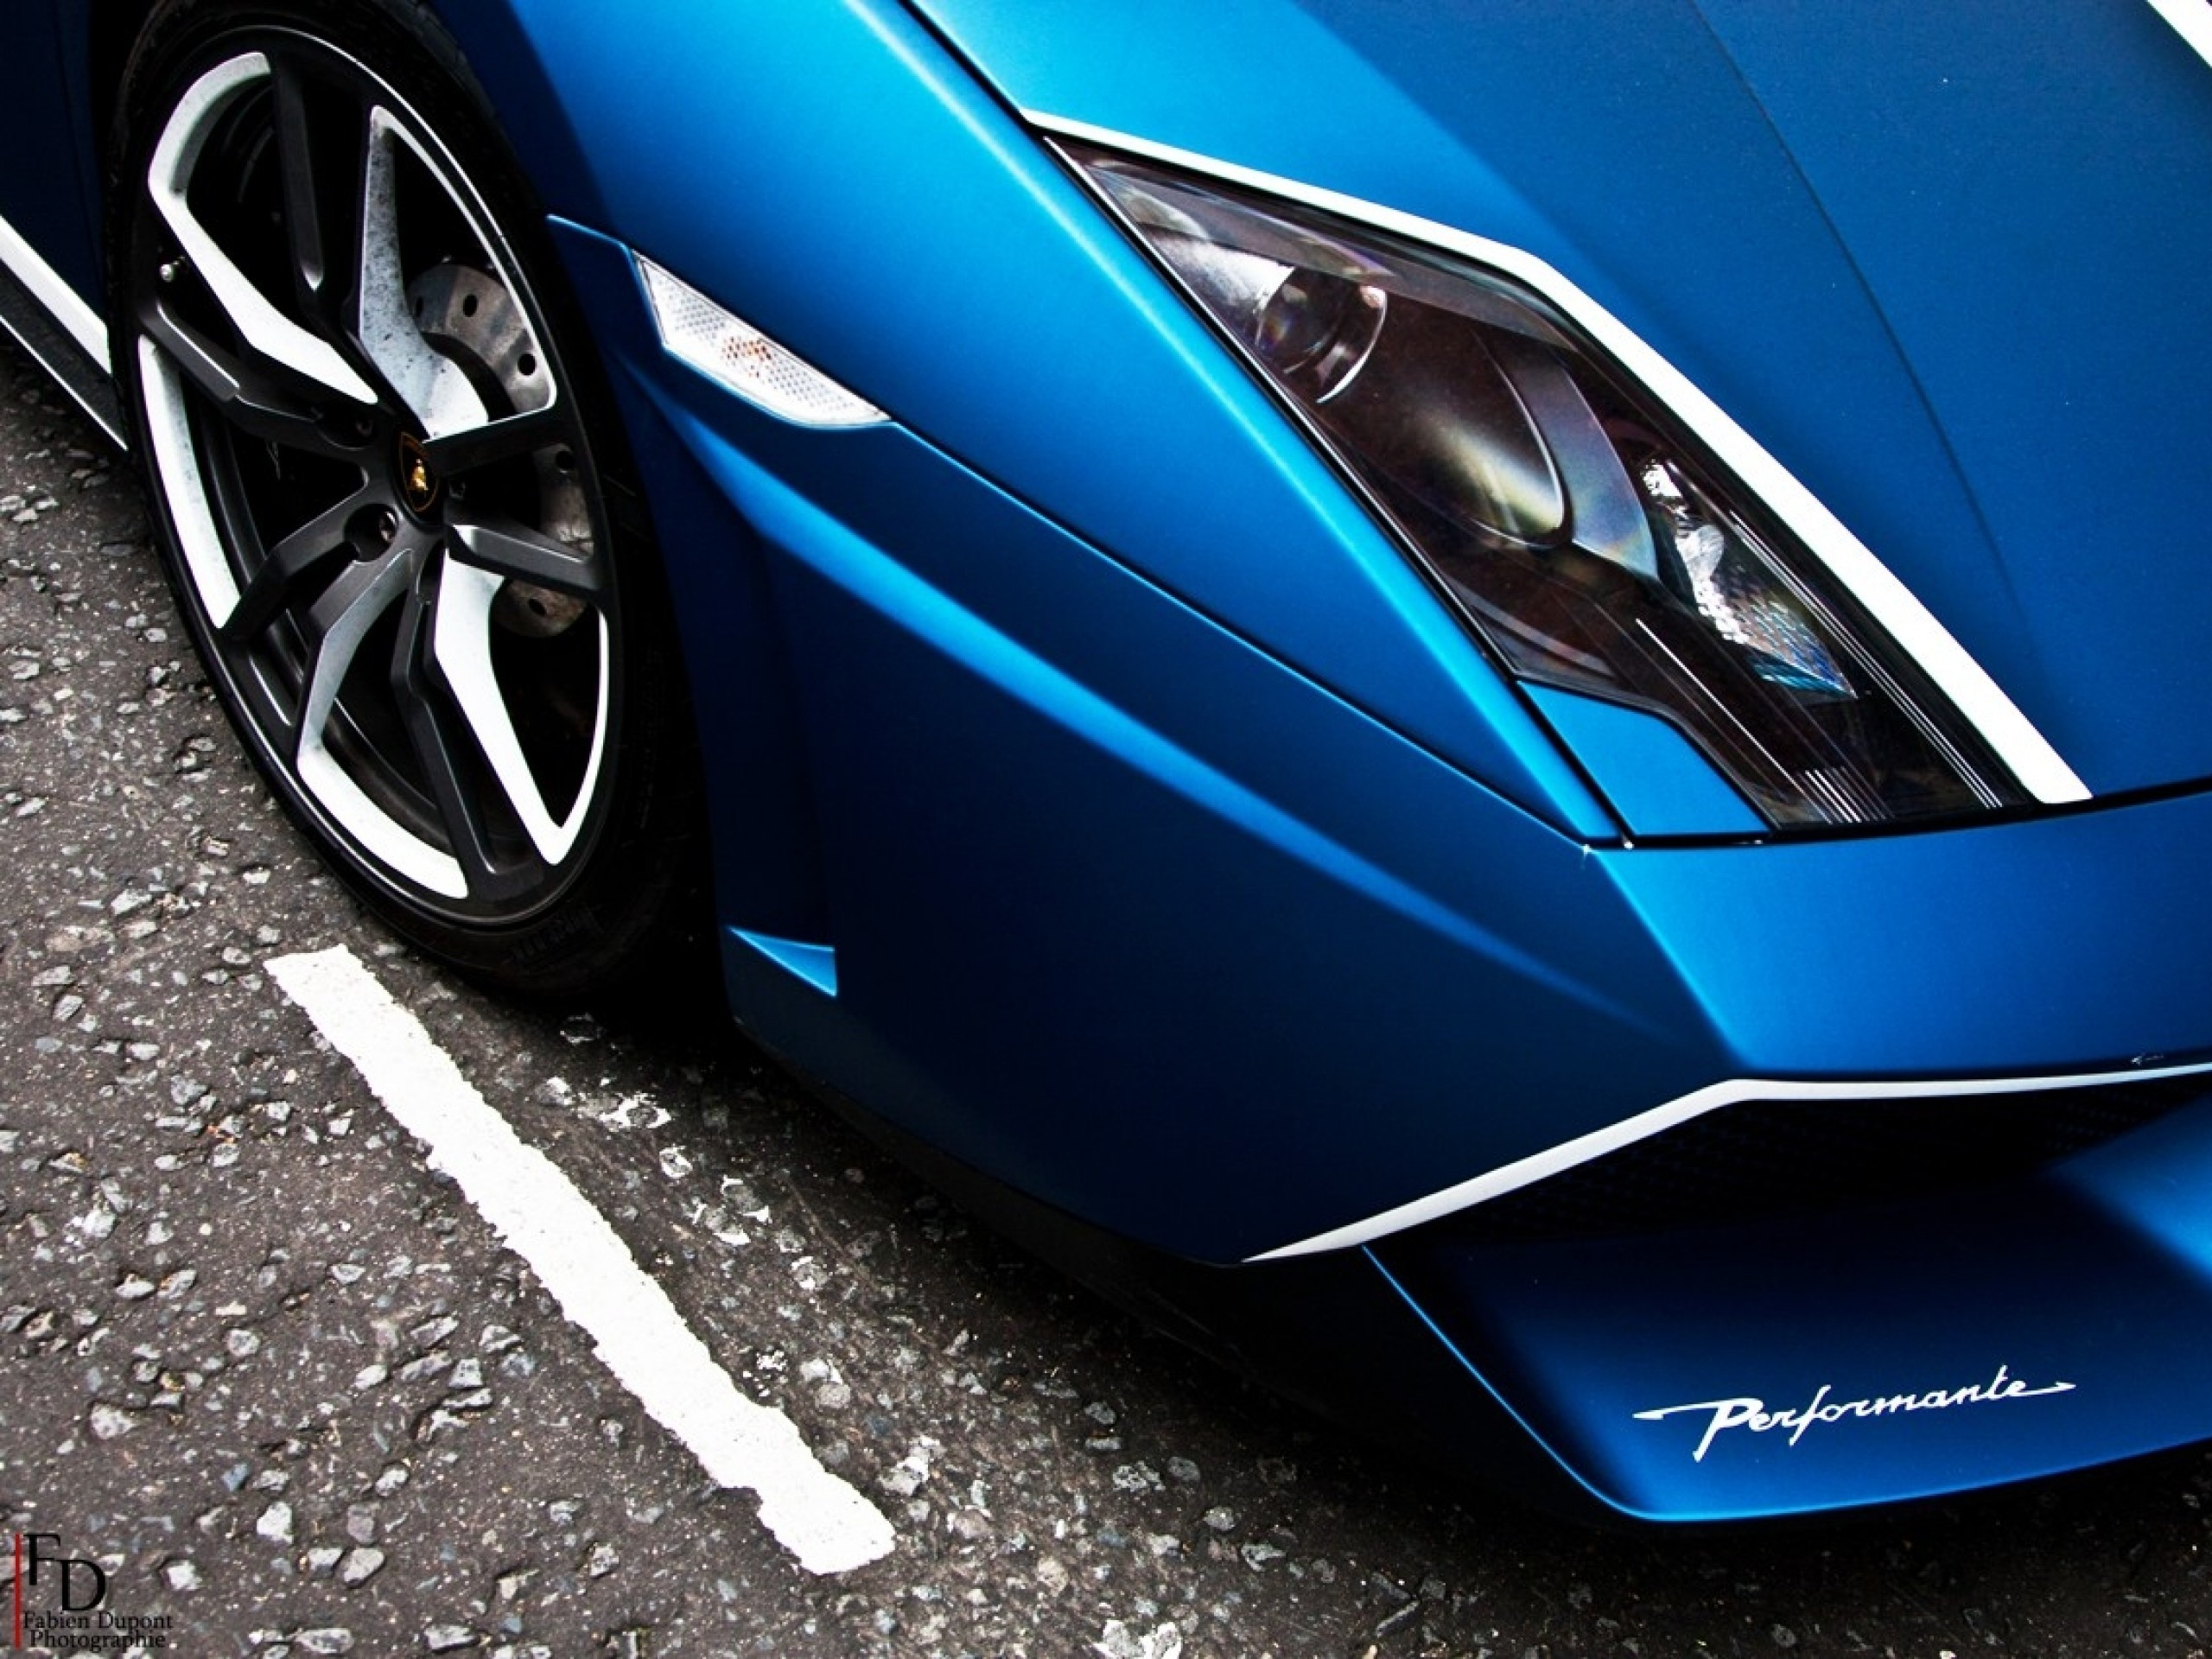 lamborghini gallardo blue cars italian wallpaper - Lamborghini Gallardo Wallpaper Blue